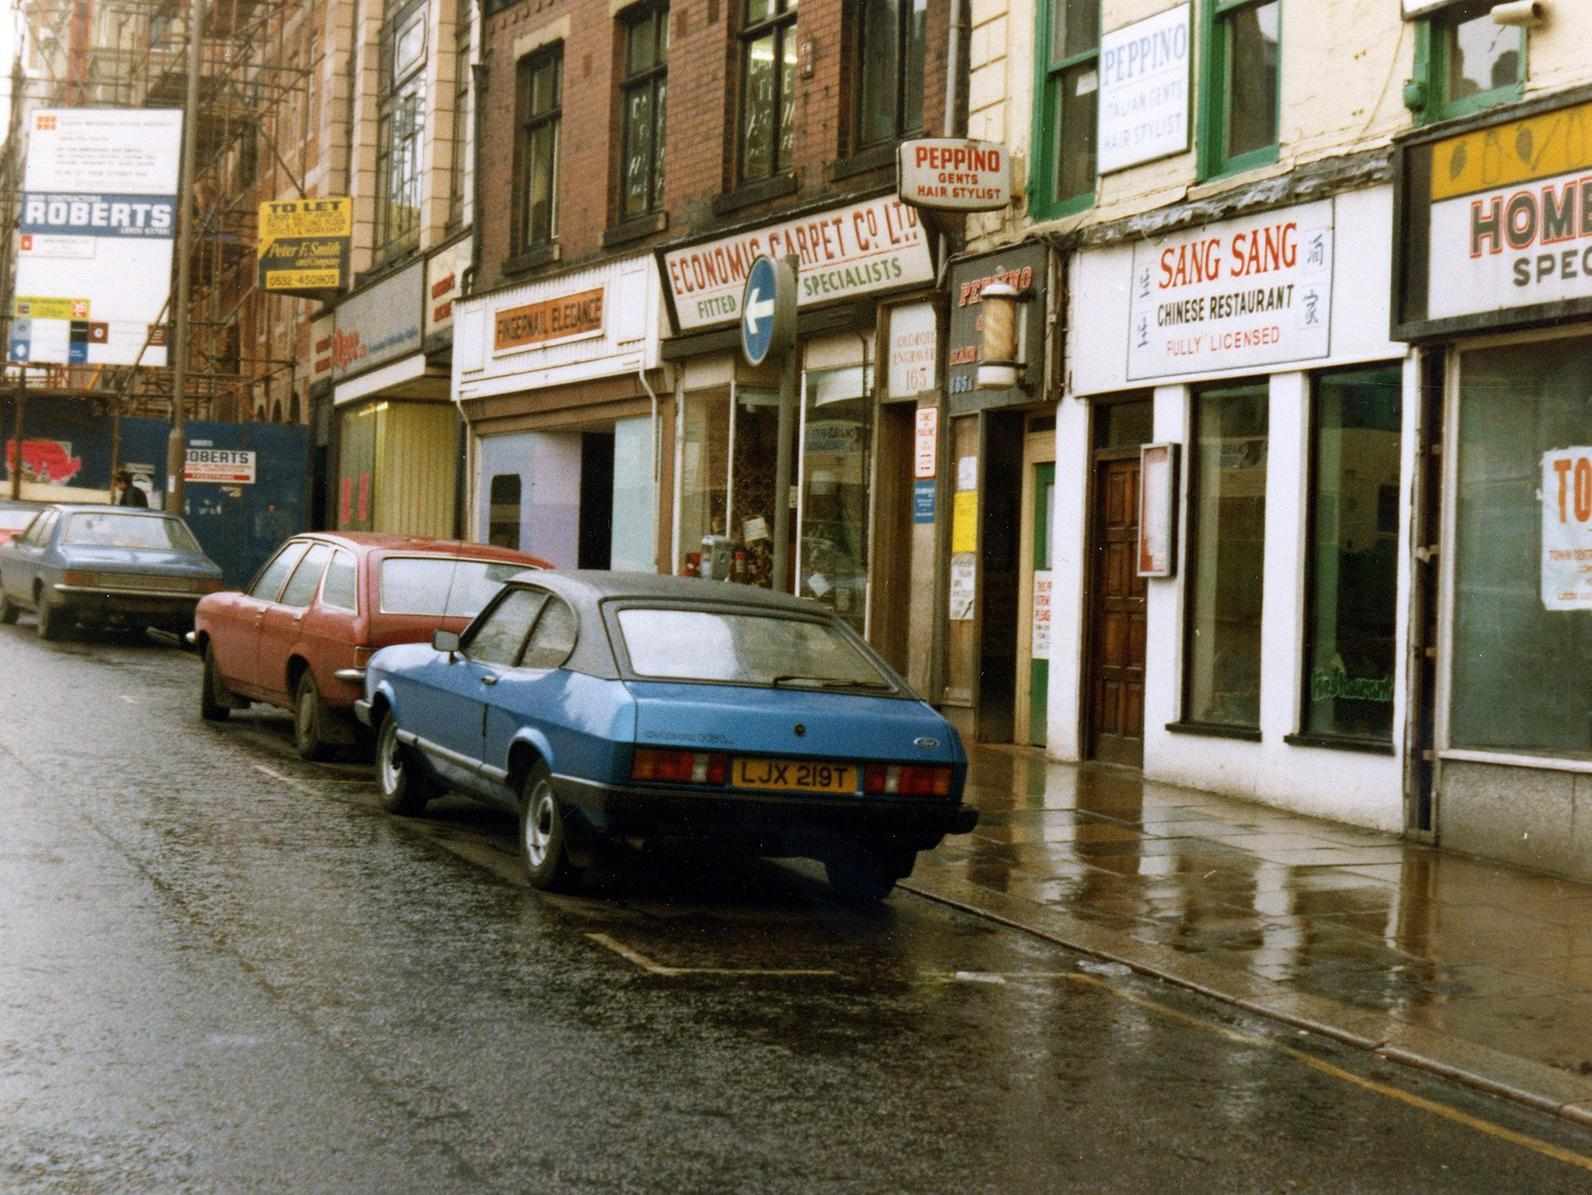 Astonishing photos show life in Leeds during the 1980s